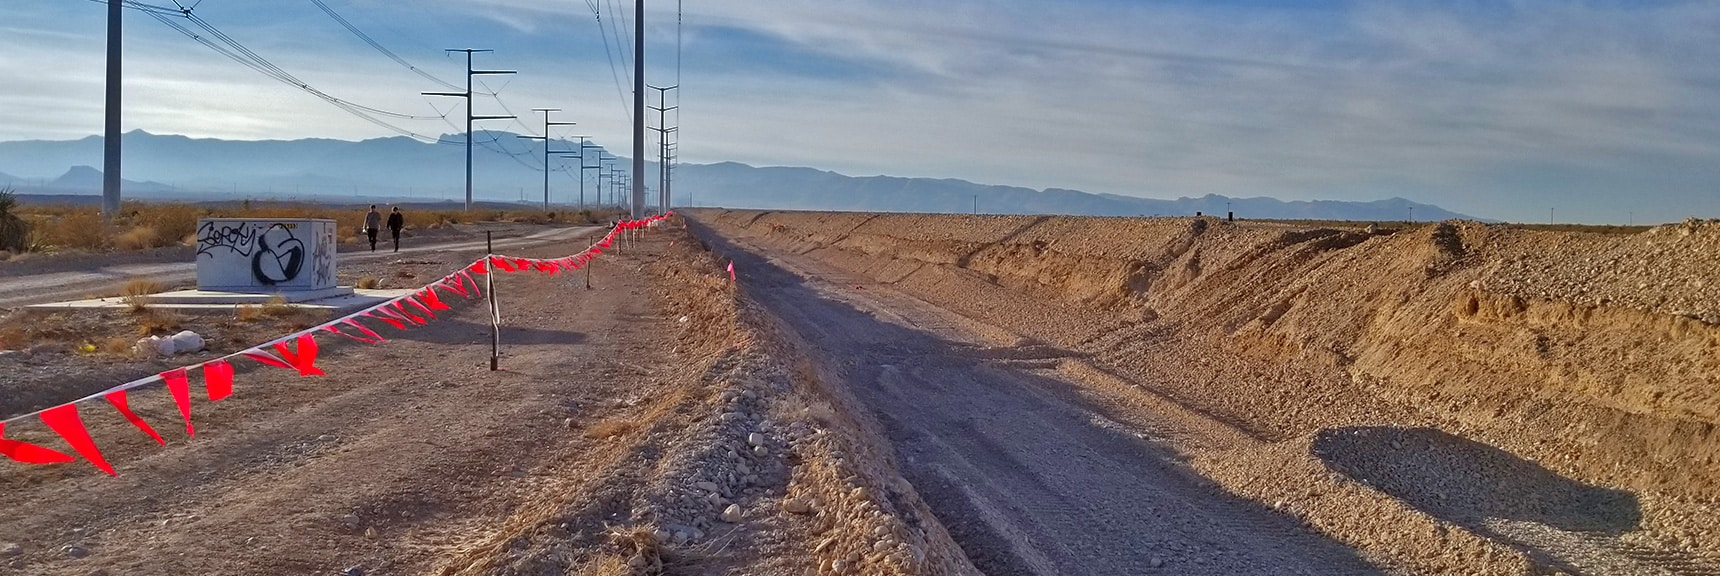 Moccasin Looking West Toward Hwy 95 and Mt. Charleston Wilderness. | Snapshot of Las Vegas Northern Growth Edge on January 3, 2021